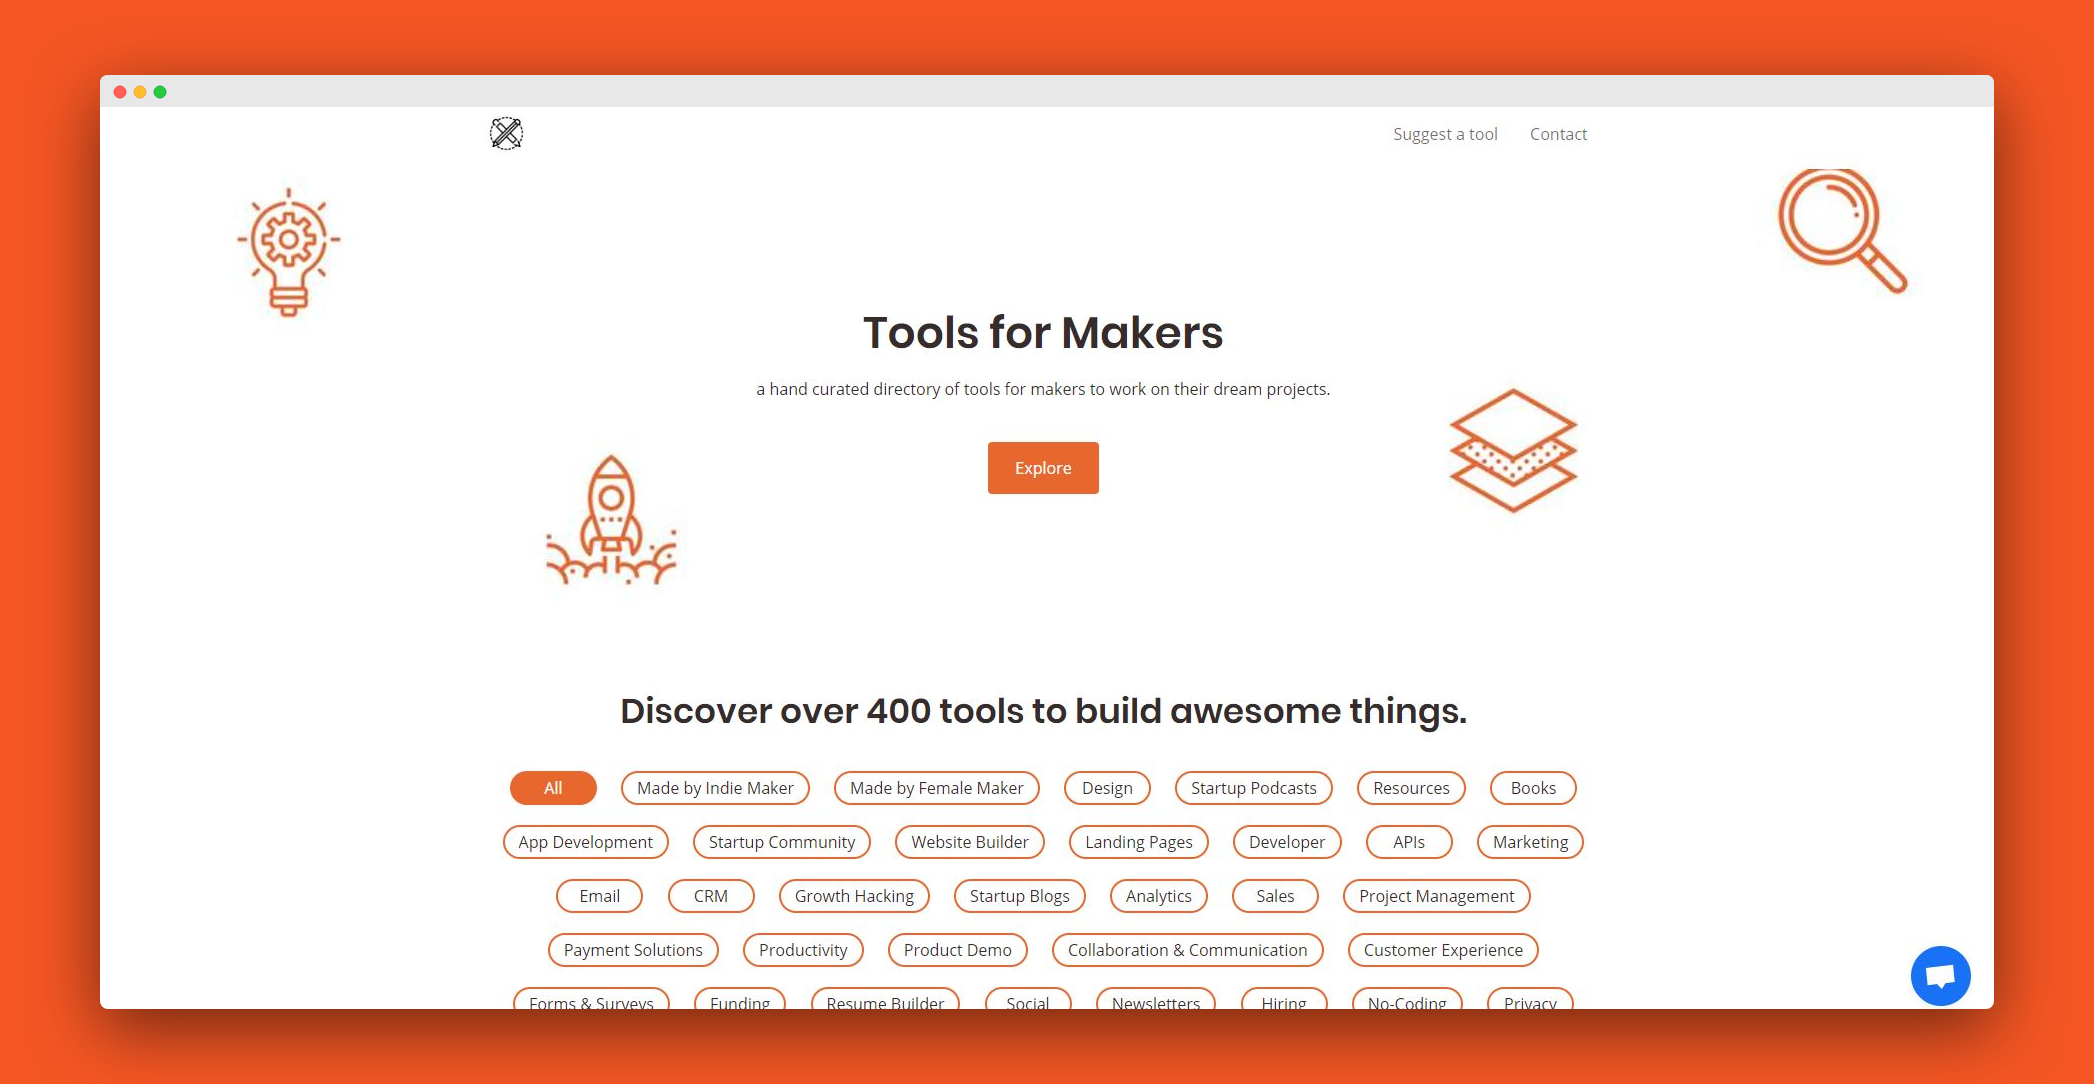 a hand curated directory of tools for makers to work on their dream projects